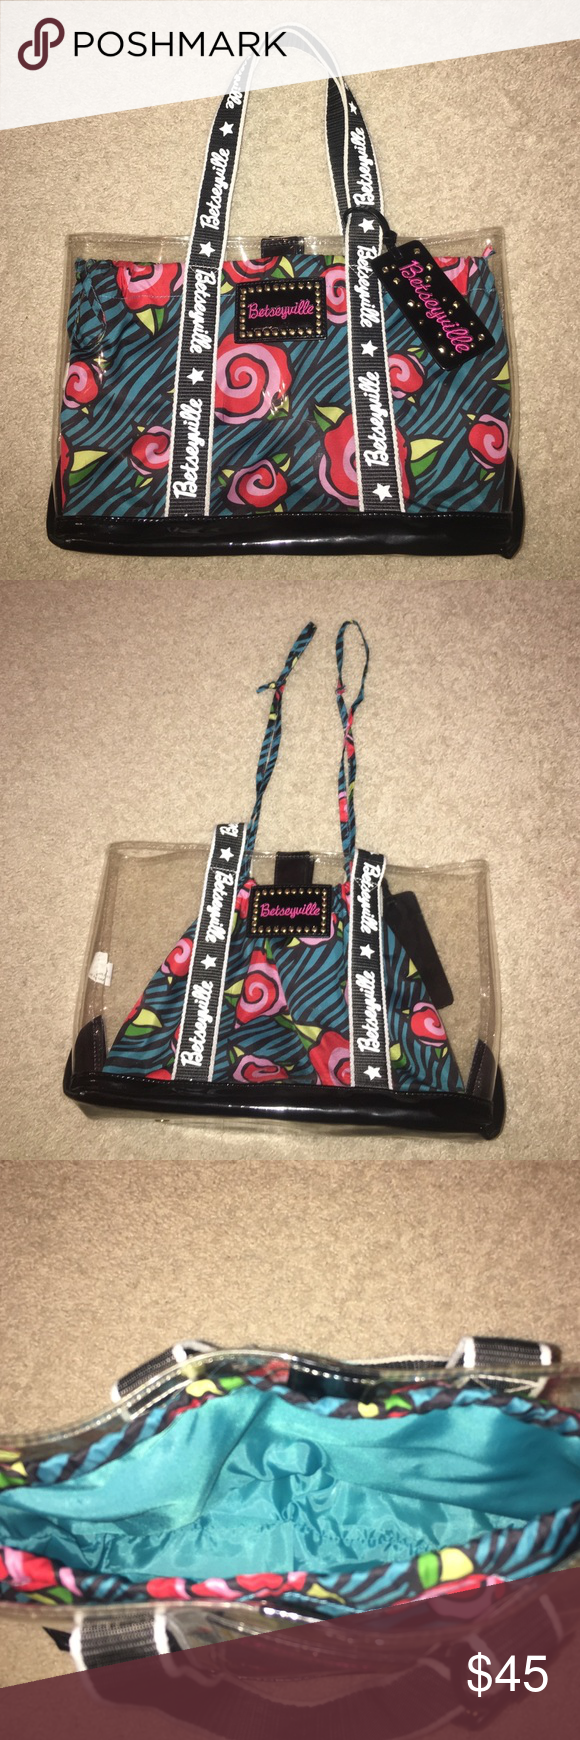 Betseyville by Betsey Johnson Vinyl Tote Bag Betseyville by Betsey Johnson Vinyl Tote Bag, vinyl outside with a drawstring bag attached inside, the bag closes with magnets, blue with black stripes and roses, OBO Betsey Johnson Bags Totes